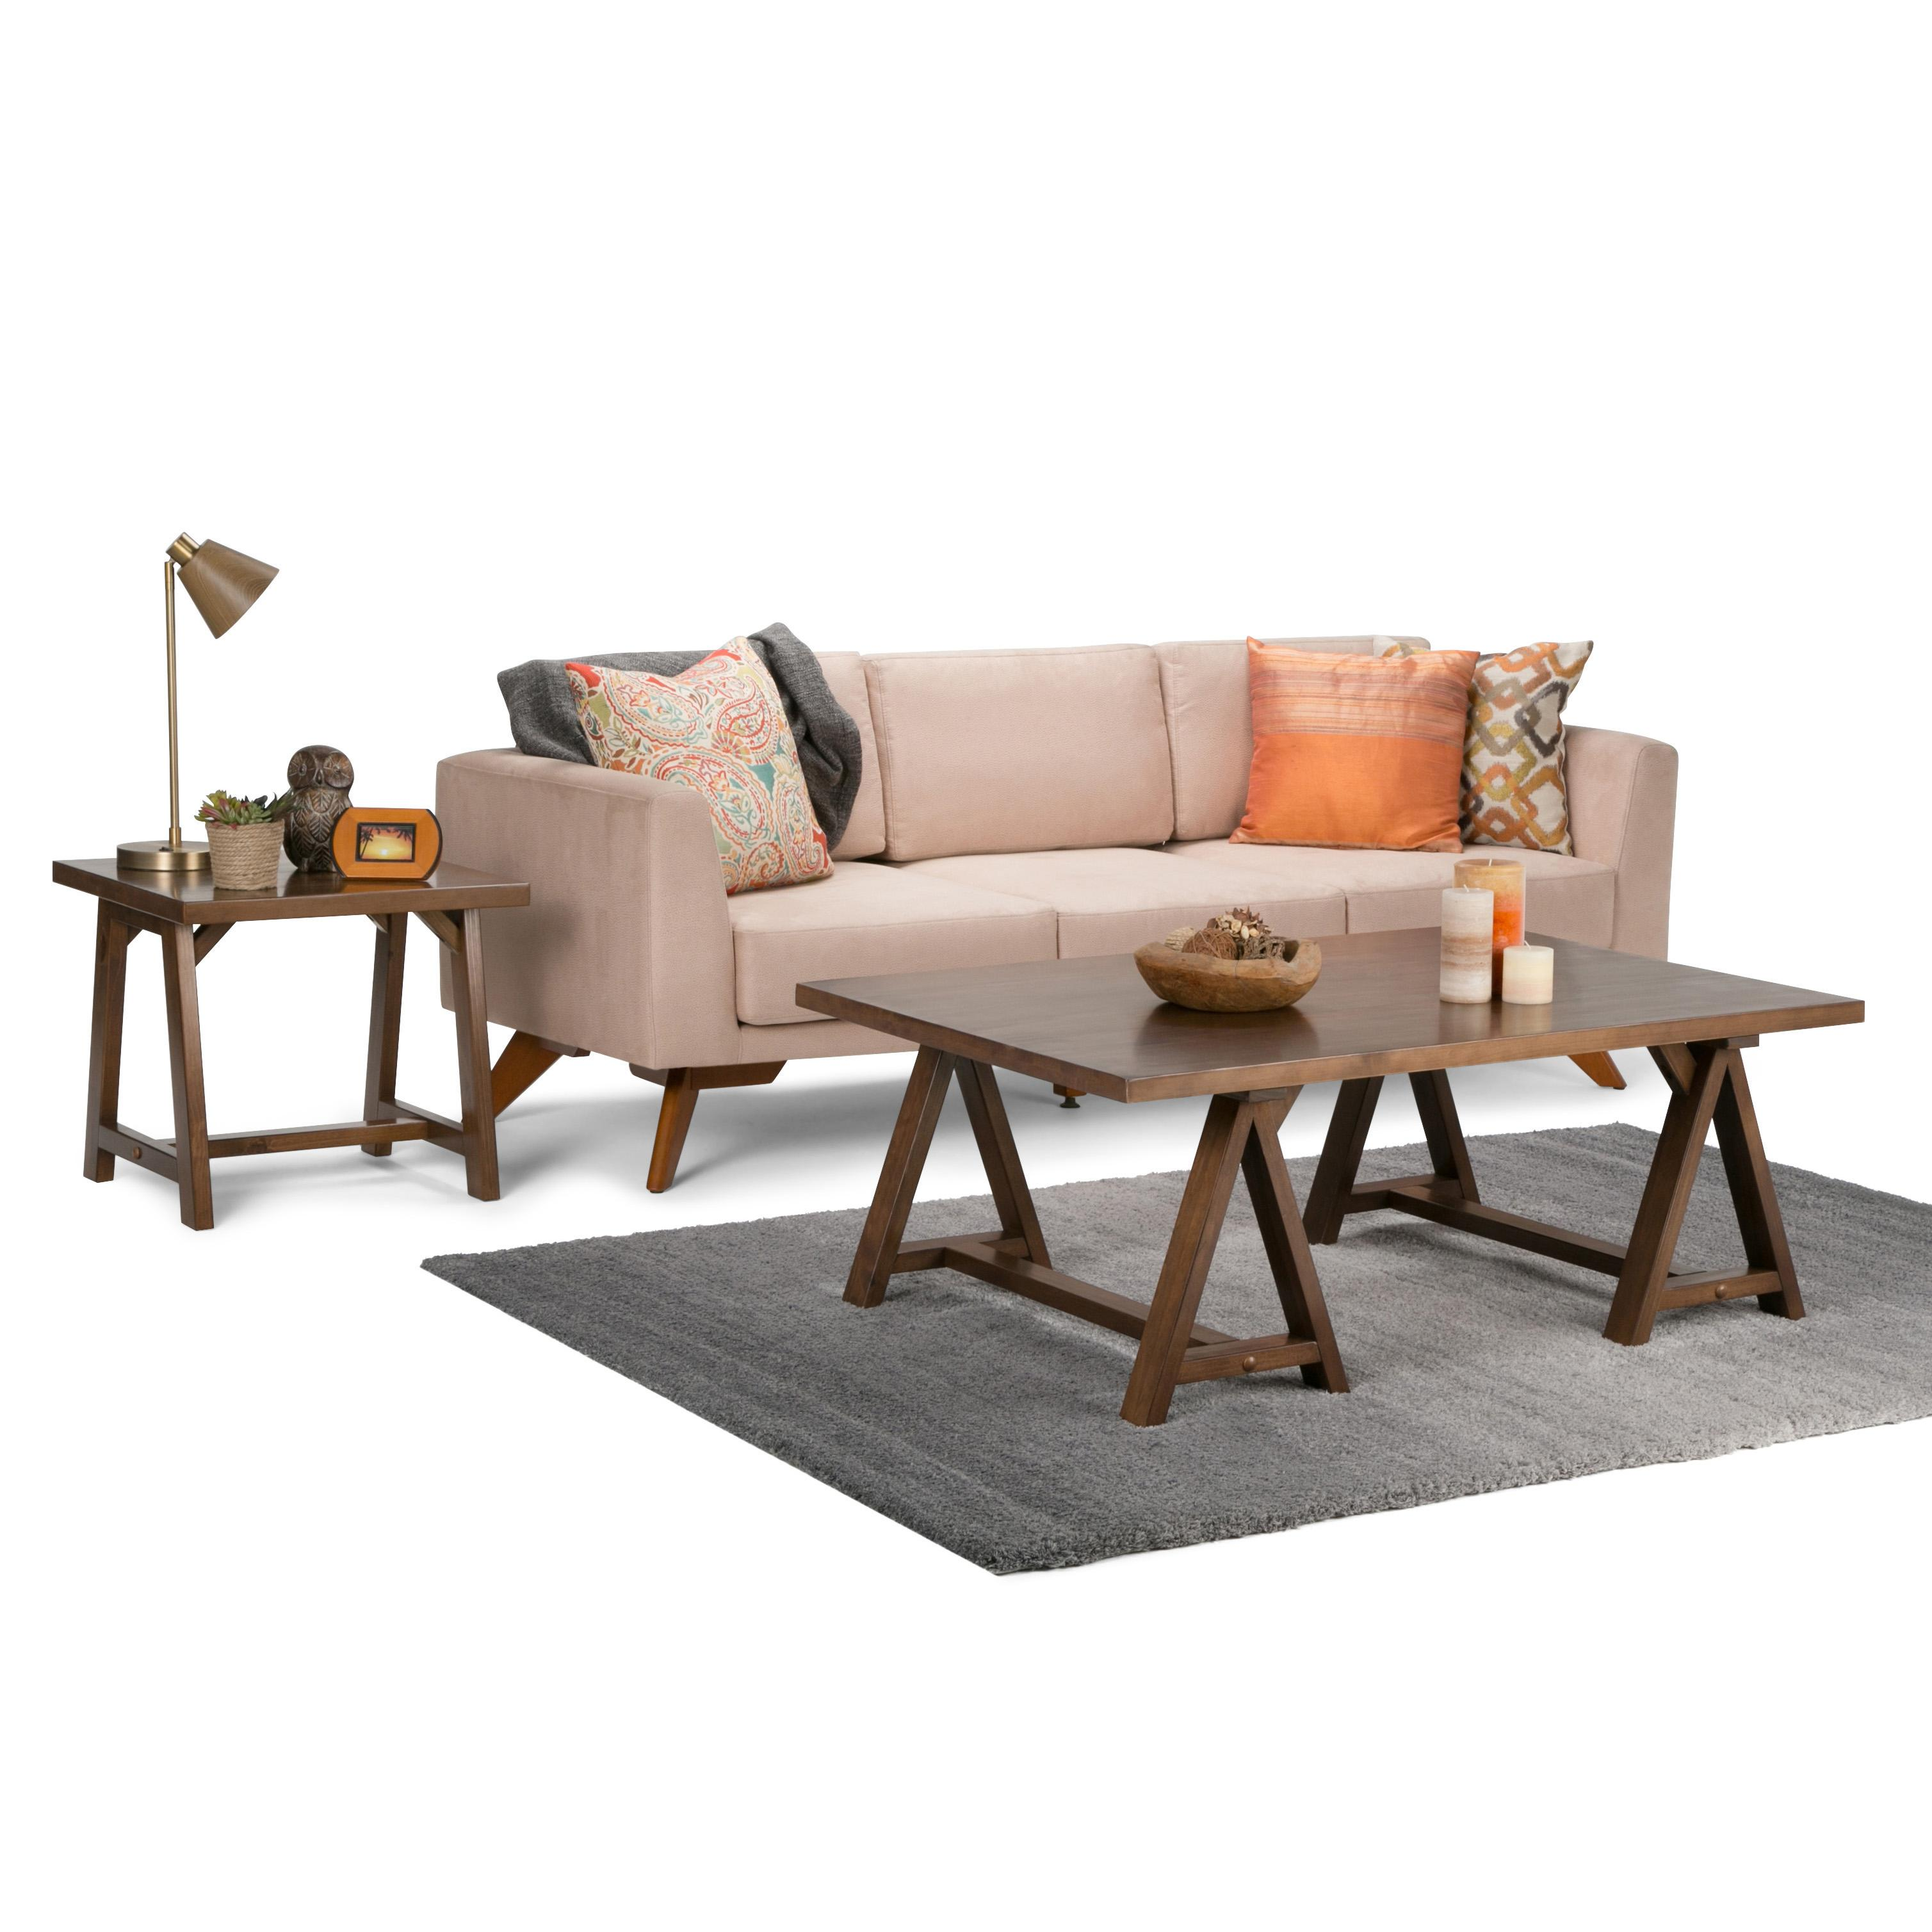 Simpli home sawhorse solid wood console sofa for Epl table 99 00